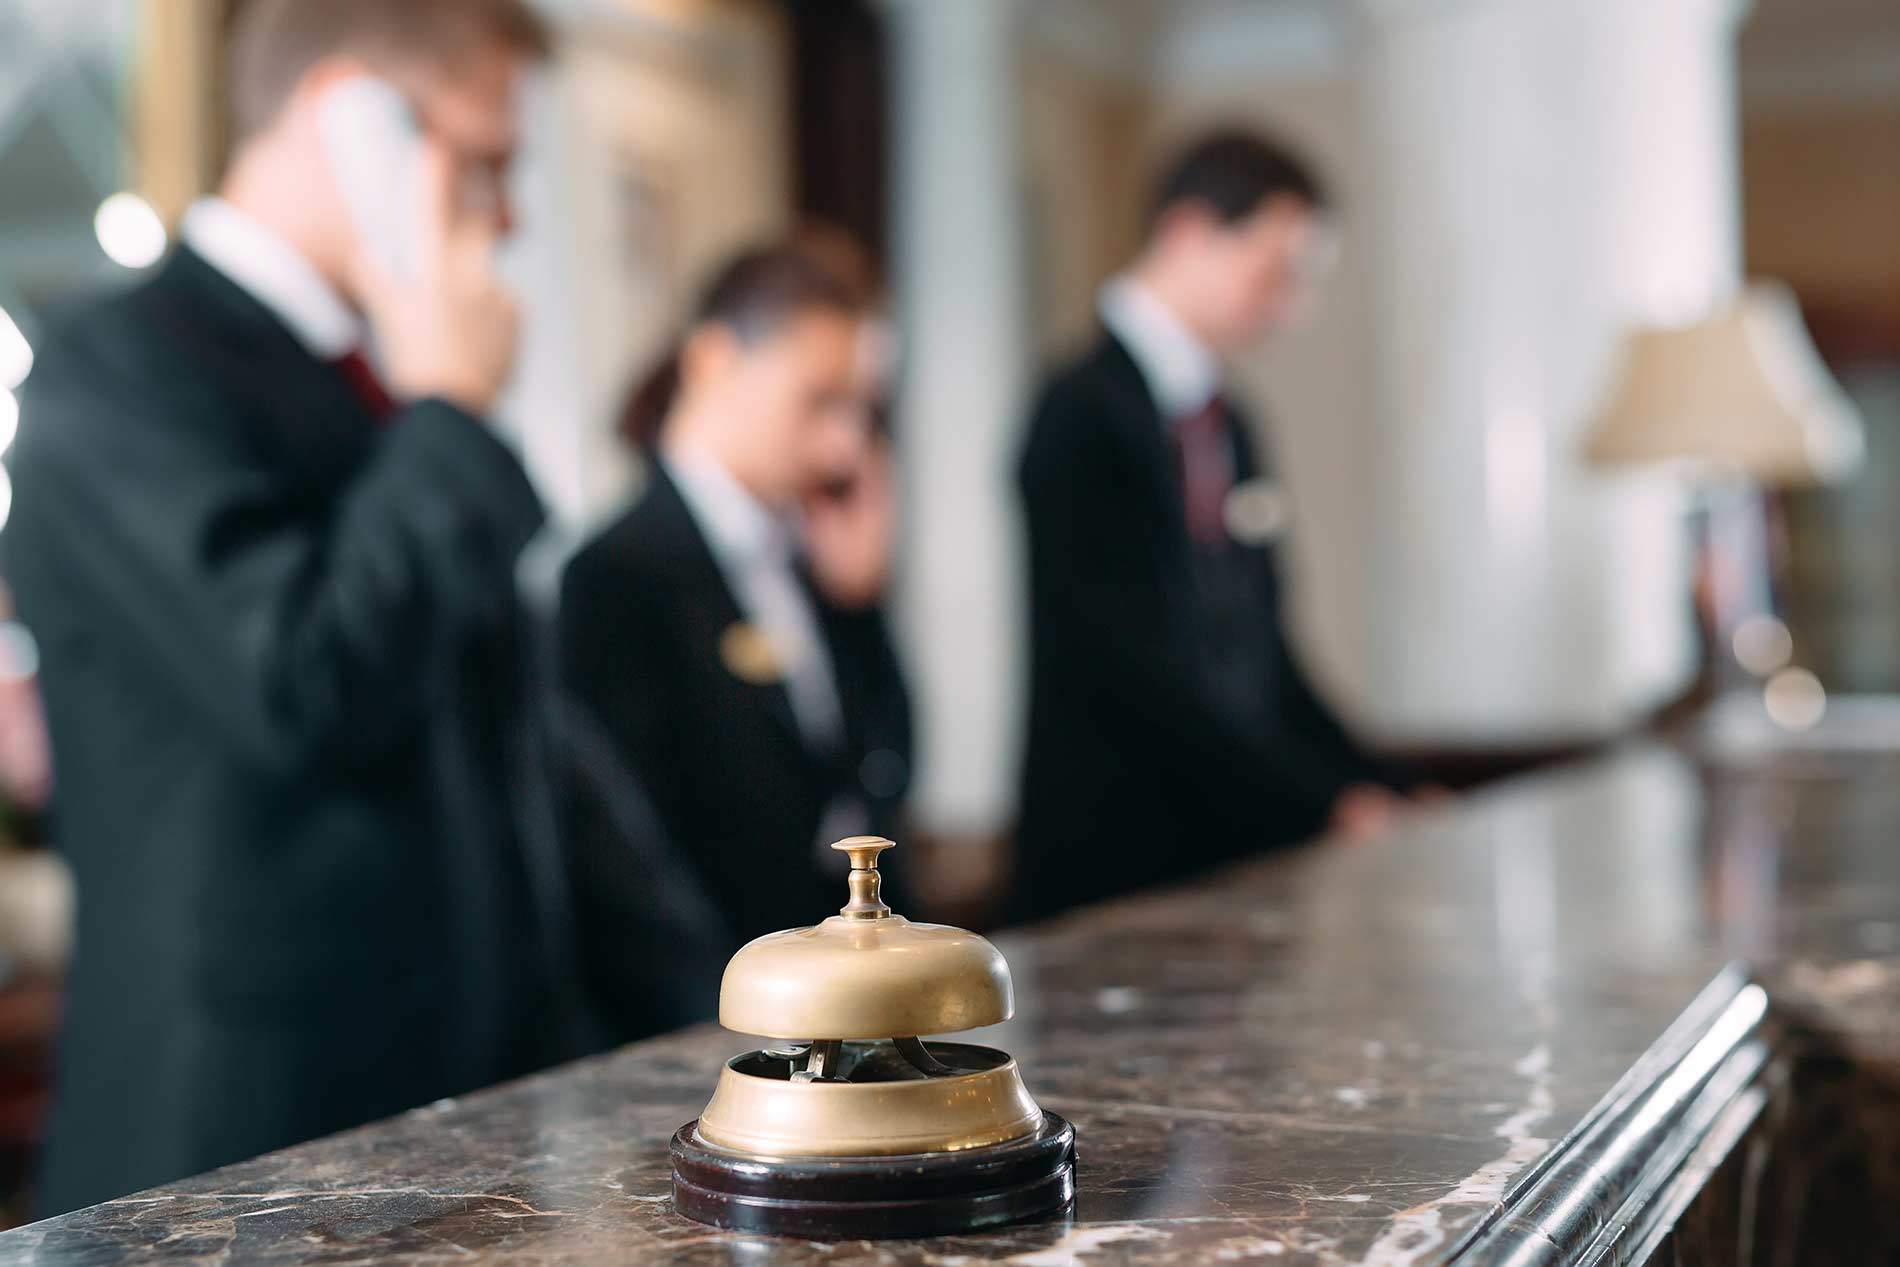 Reception Security Firm in Manchester